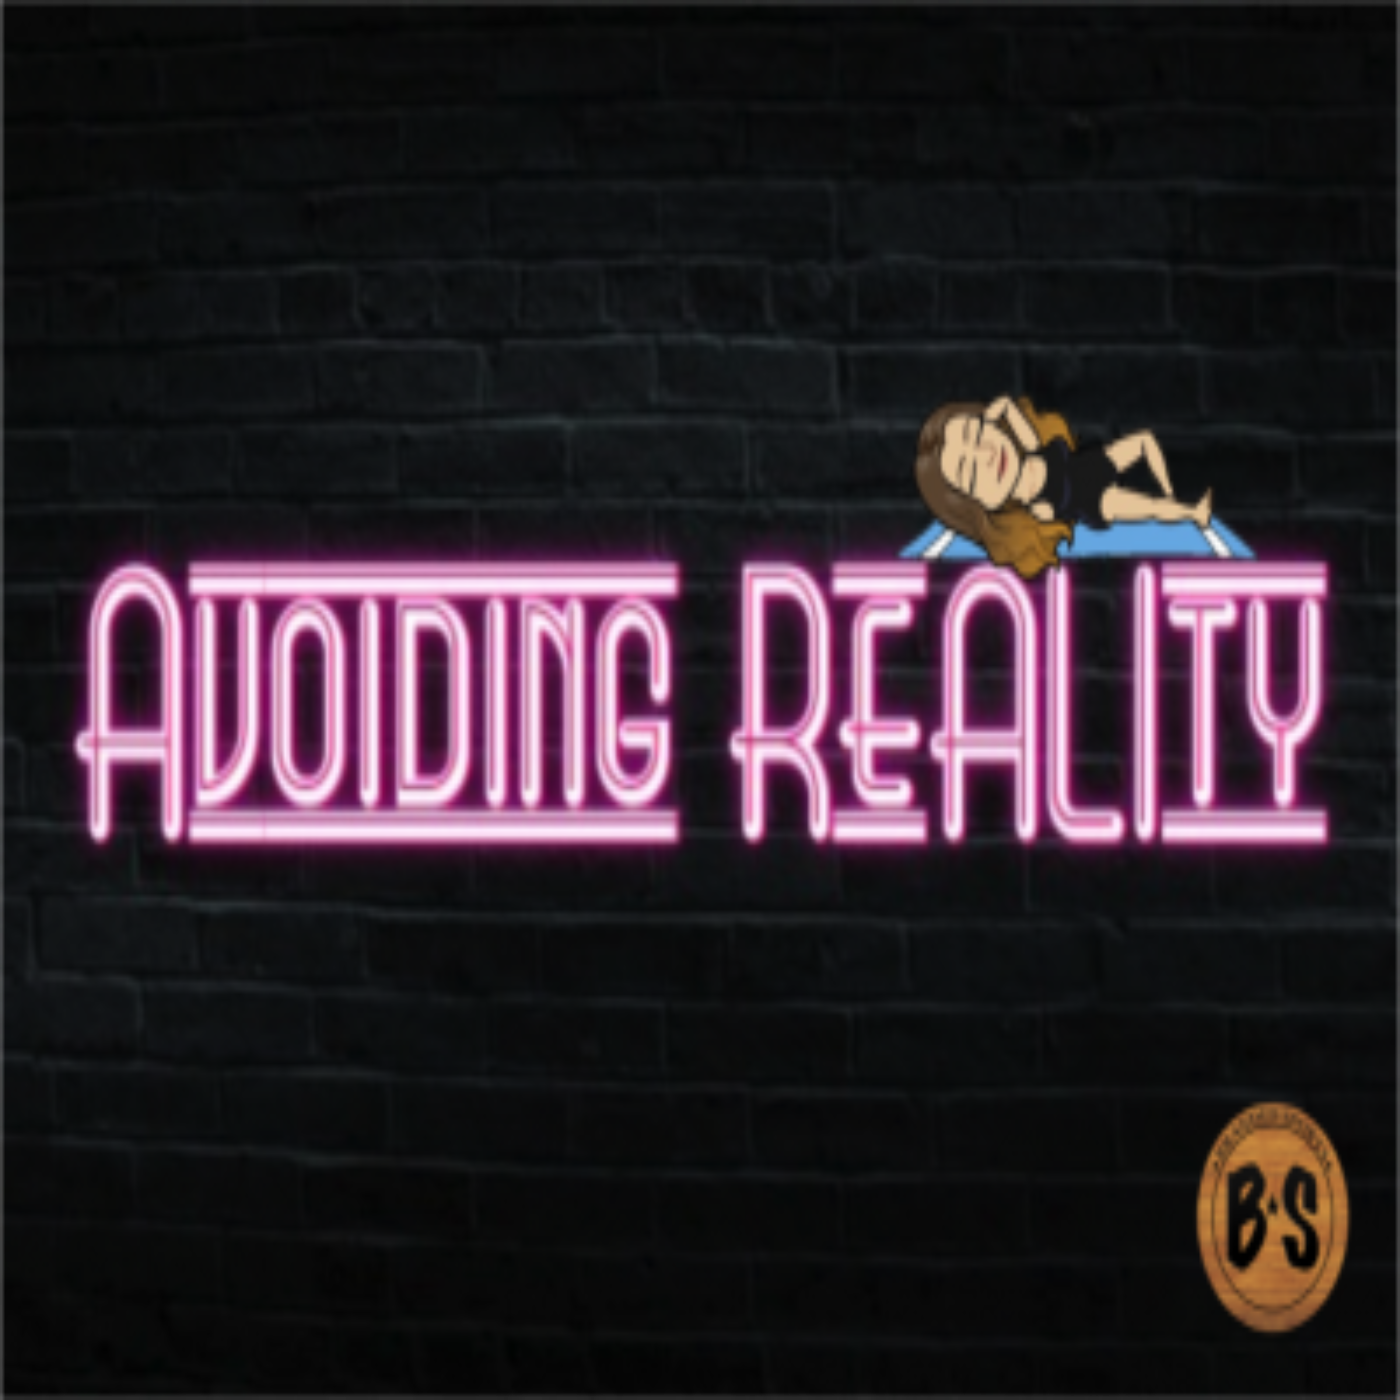 Avoiding ReALIty: Everyone Hates Victoria F, New Show Alert, Below Deck (Both Boats), Real Housewives Retirement Updates, Why Vanderpump Rules Is Legendary And Summer House Is Not